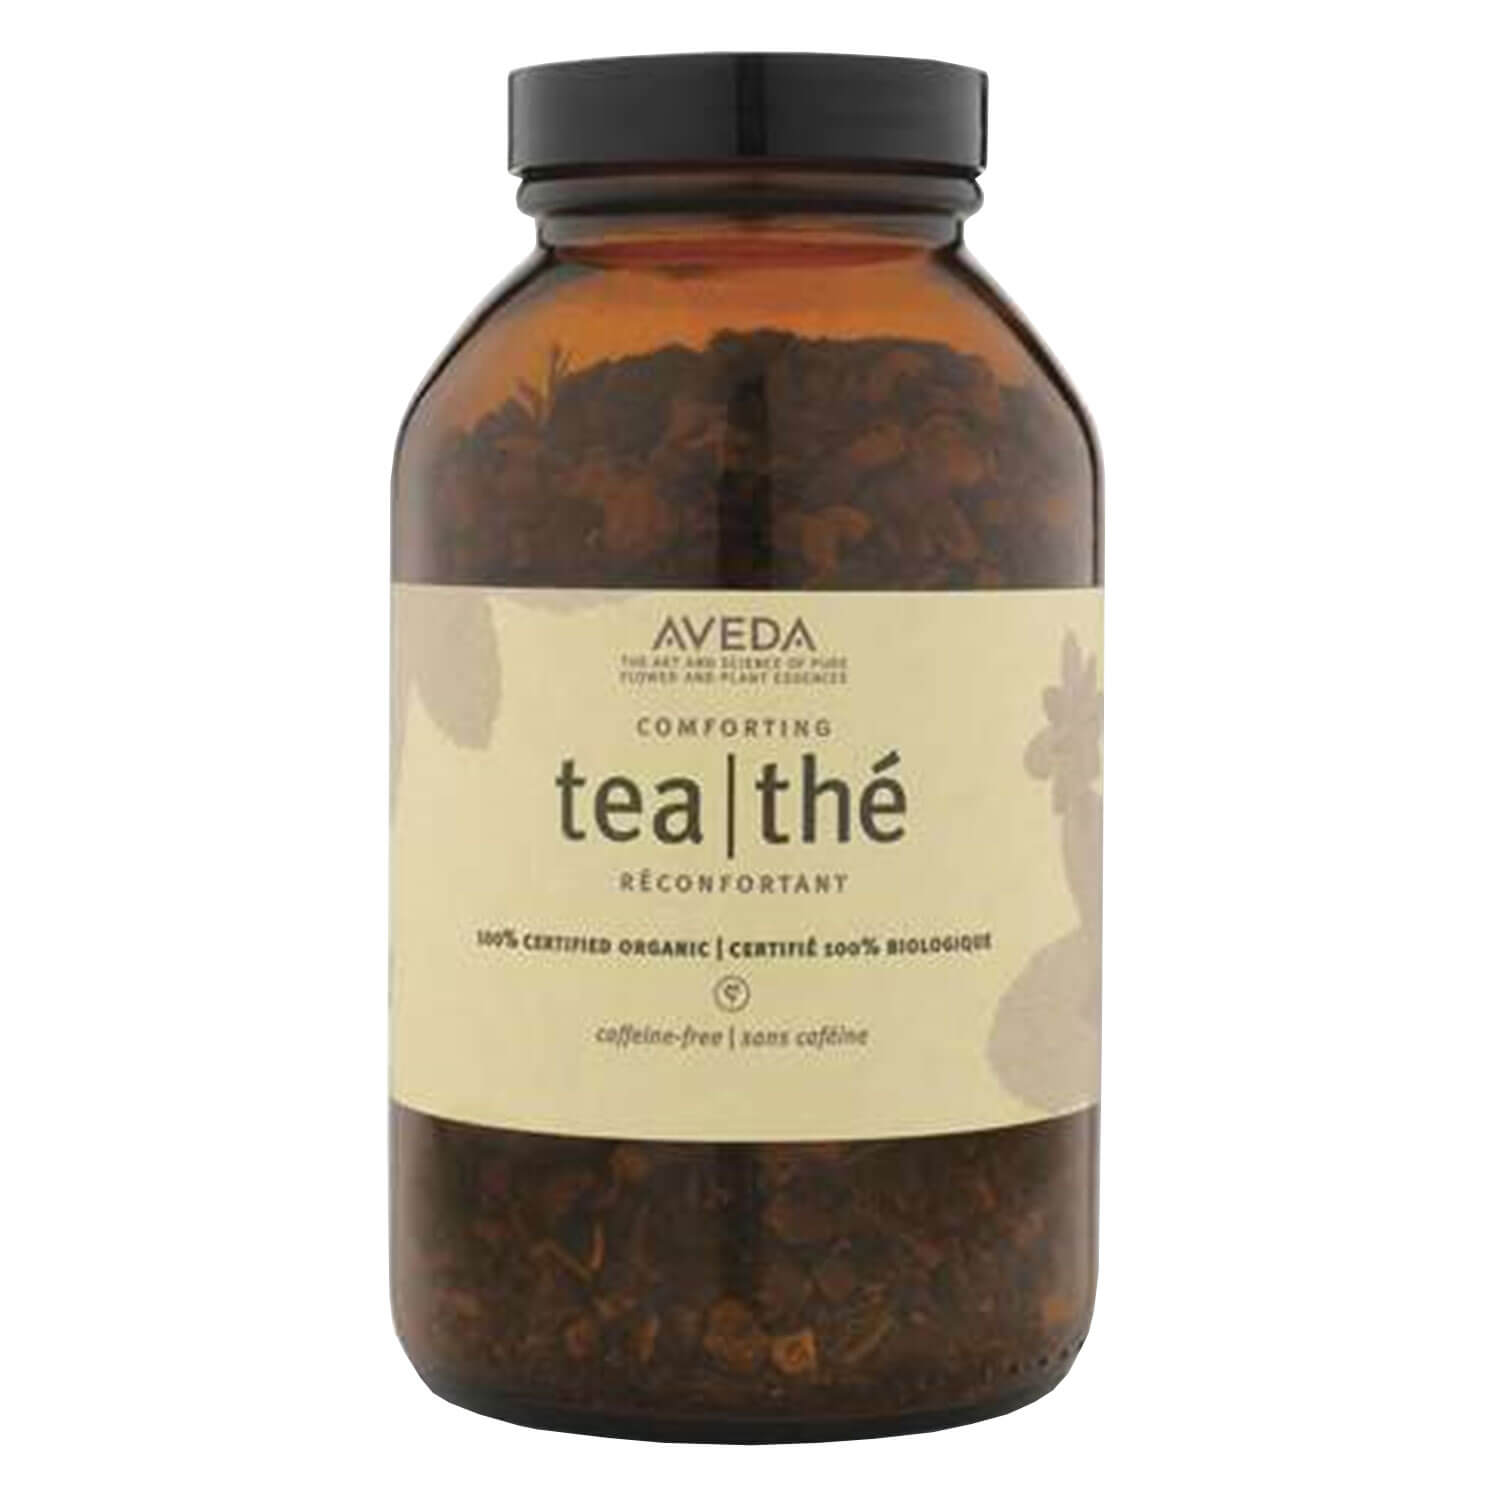 aveda tea - comforting tea loose leaf